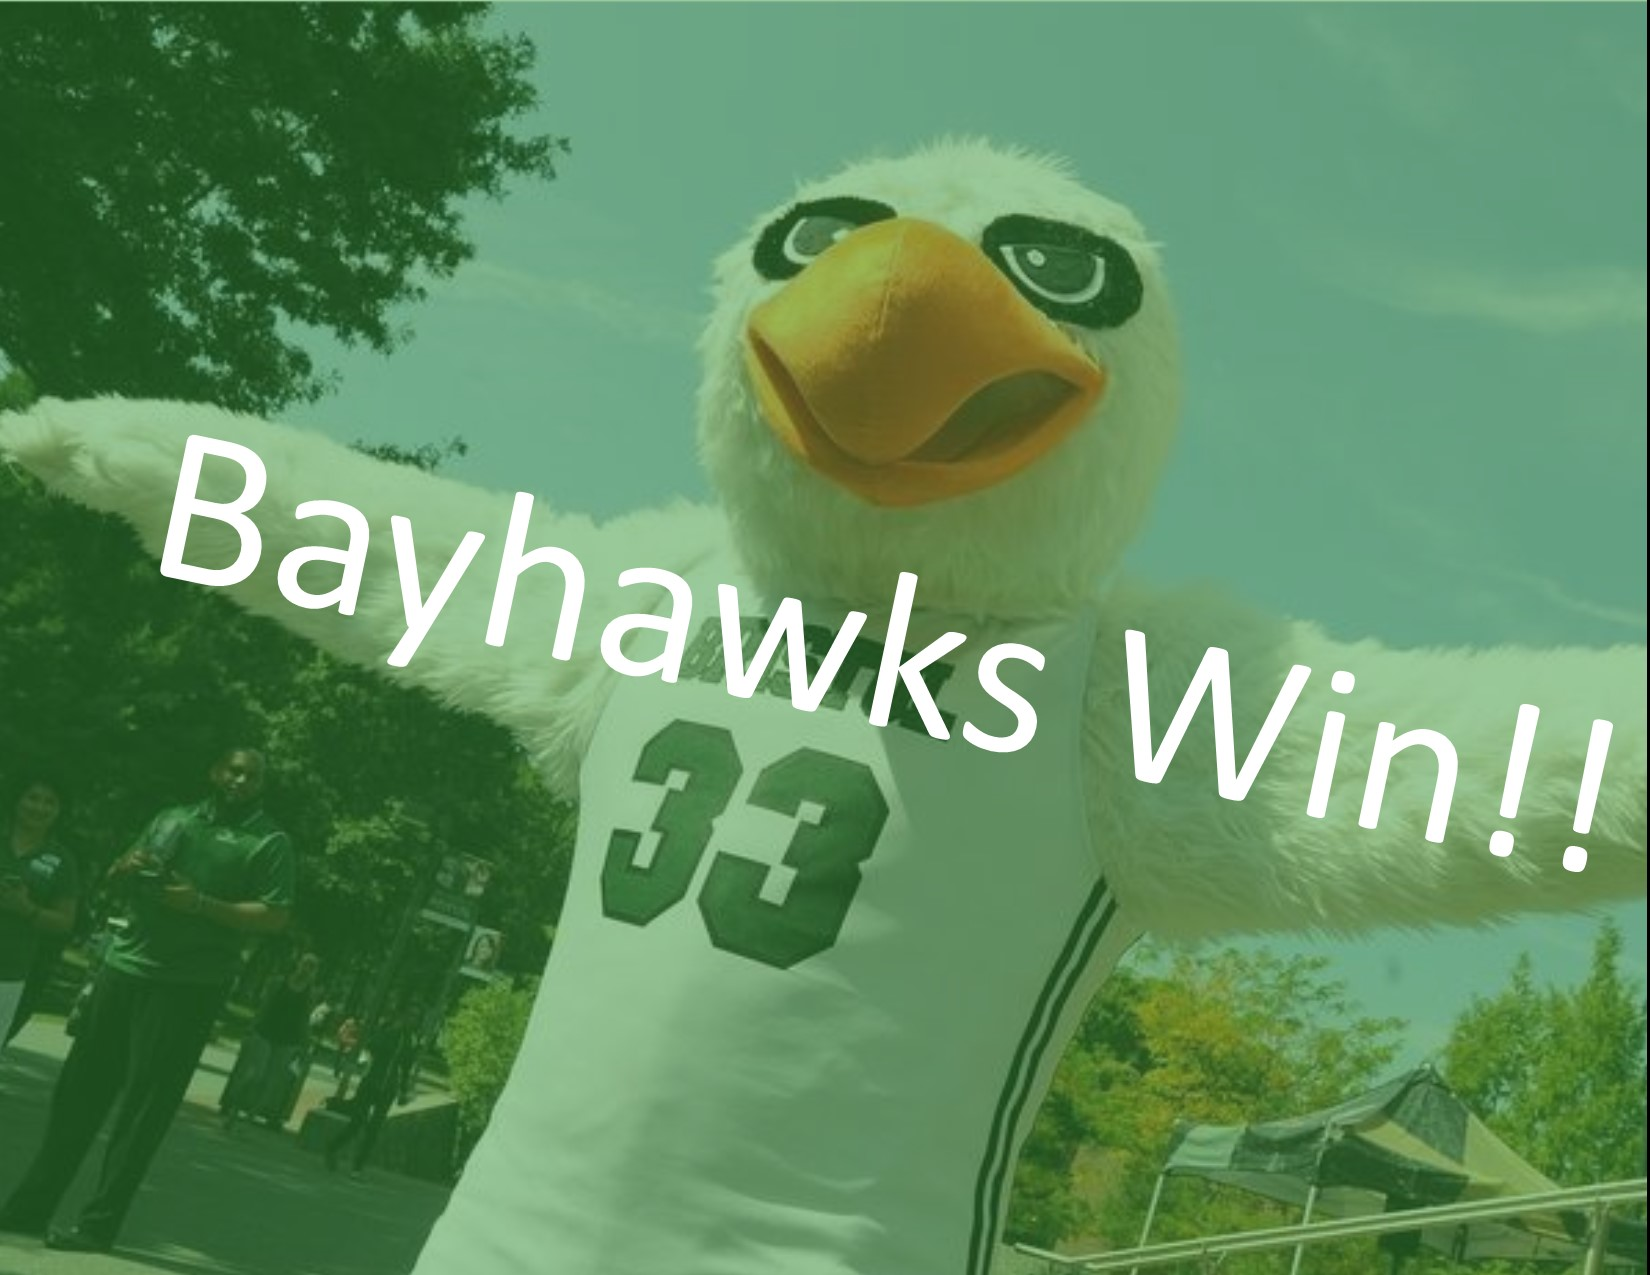 The Bayhawks Earn A Second Win!